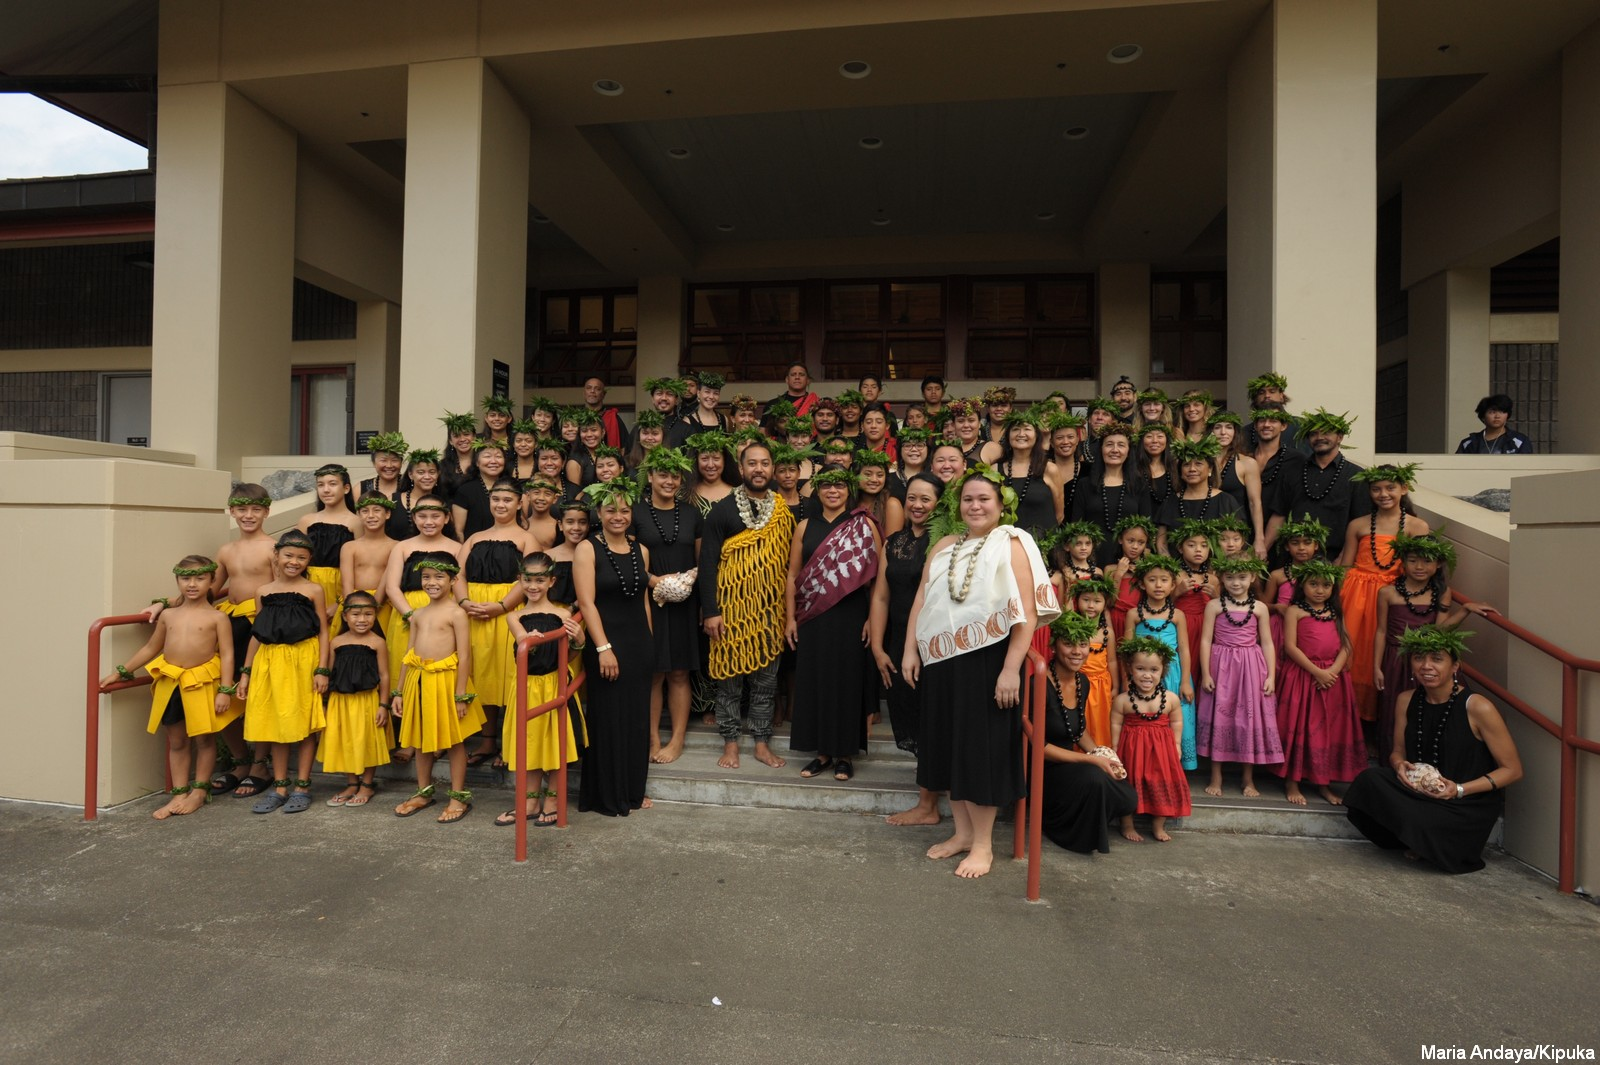 Large group of keiki and kumu on steps for group photo. Keiki are in colorful dress, adults are in black.